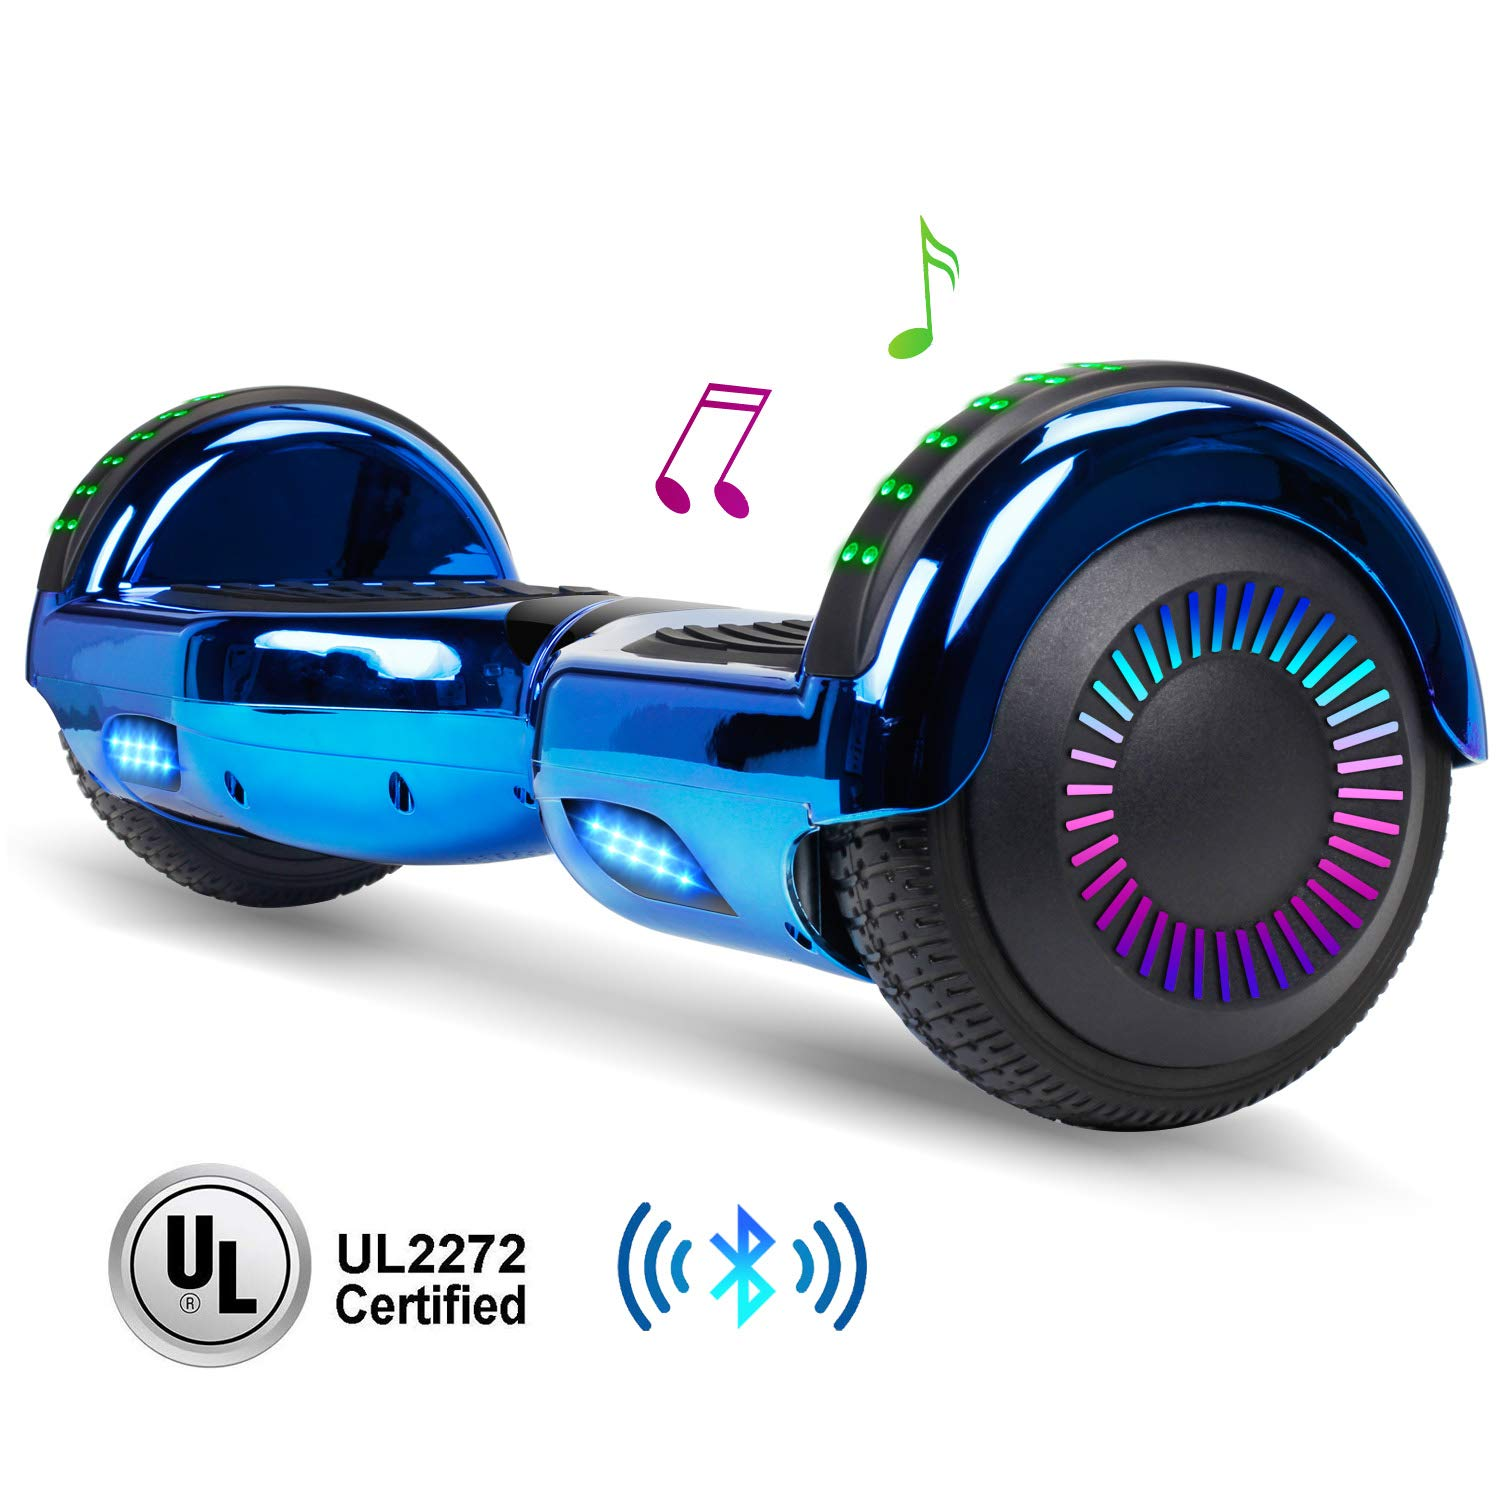 jolege Hoverboard Two-Wheel Self Balancing Electric Scooter UL 2272 Certified, Metallic Chrome with Bluetooth Speaker and LED Light